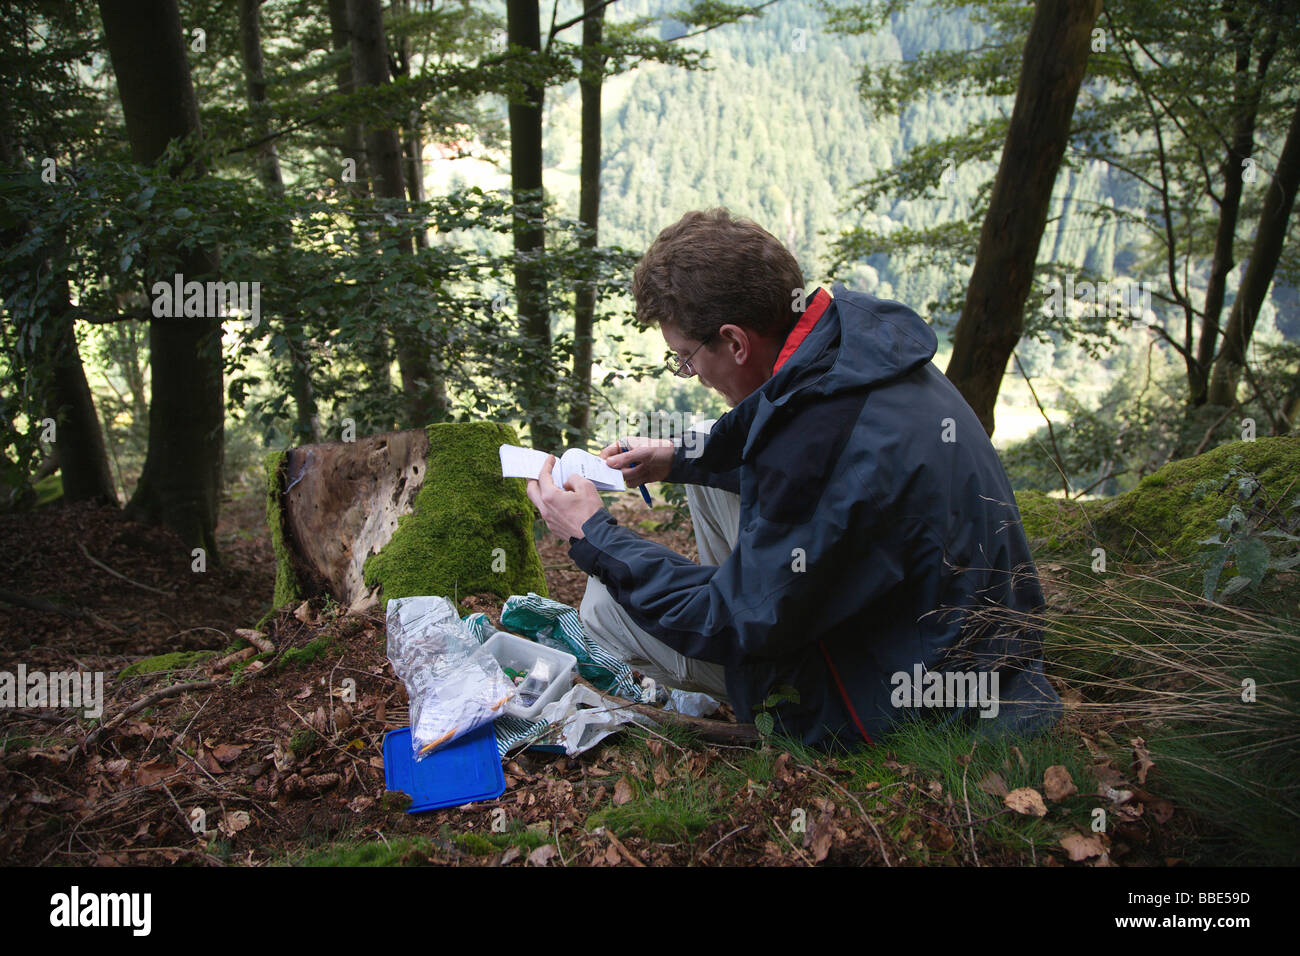 Geocacher lifting a cache, near Oberried in the Black Forest, Germany, Europe - Stock Image